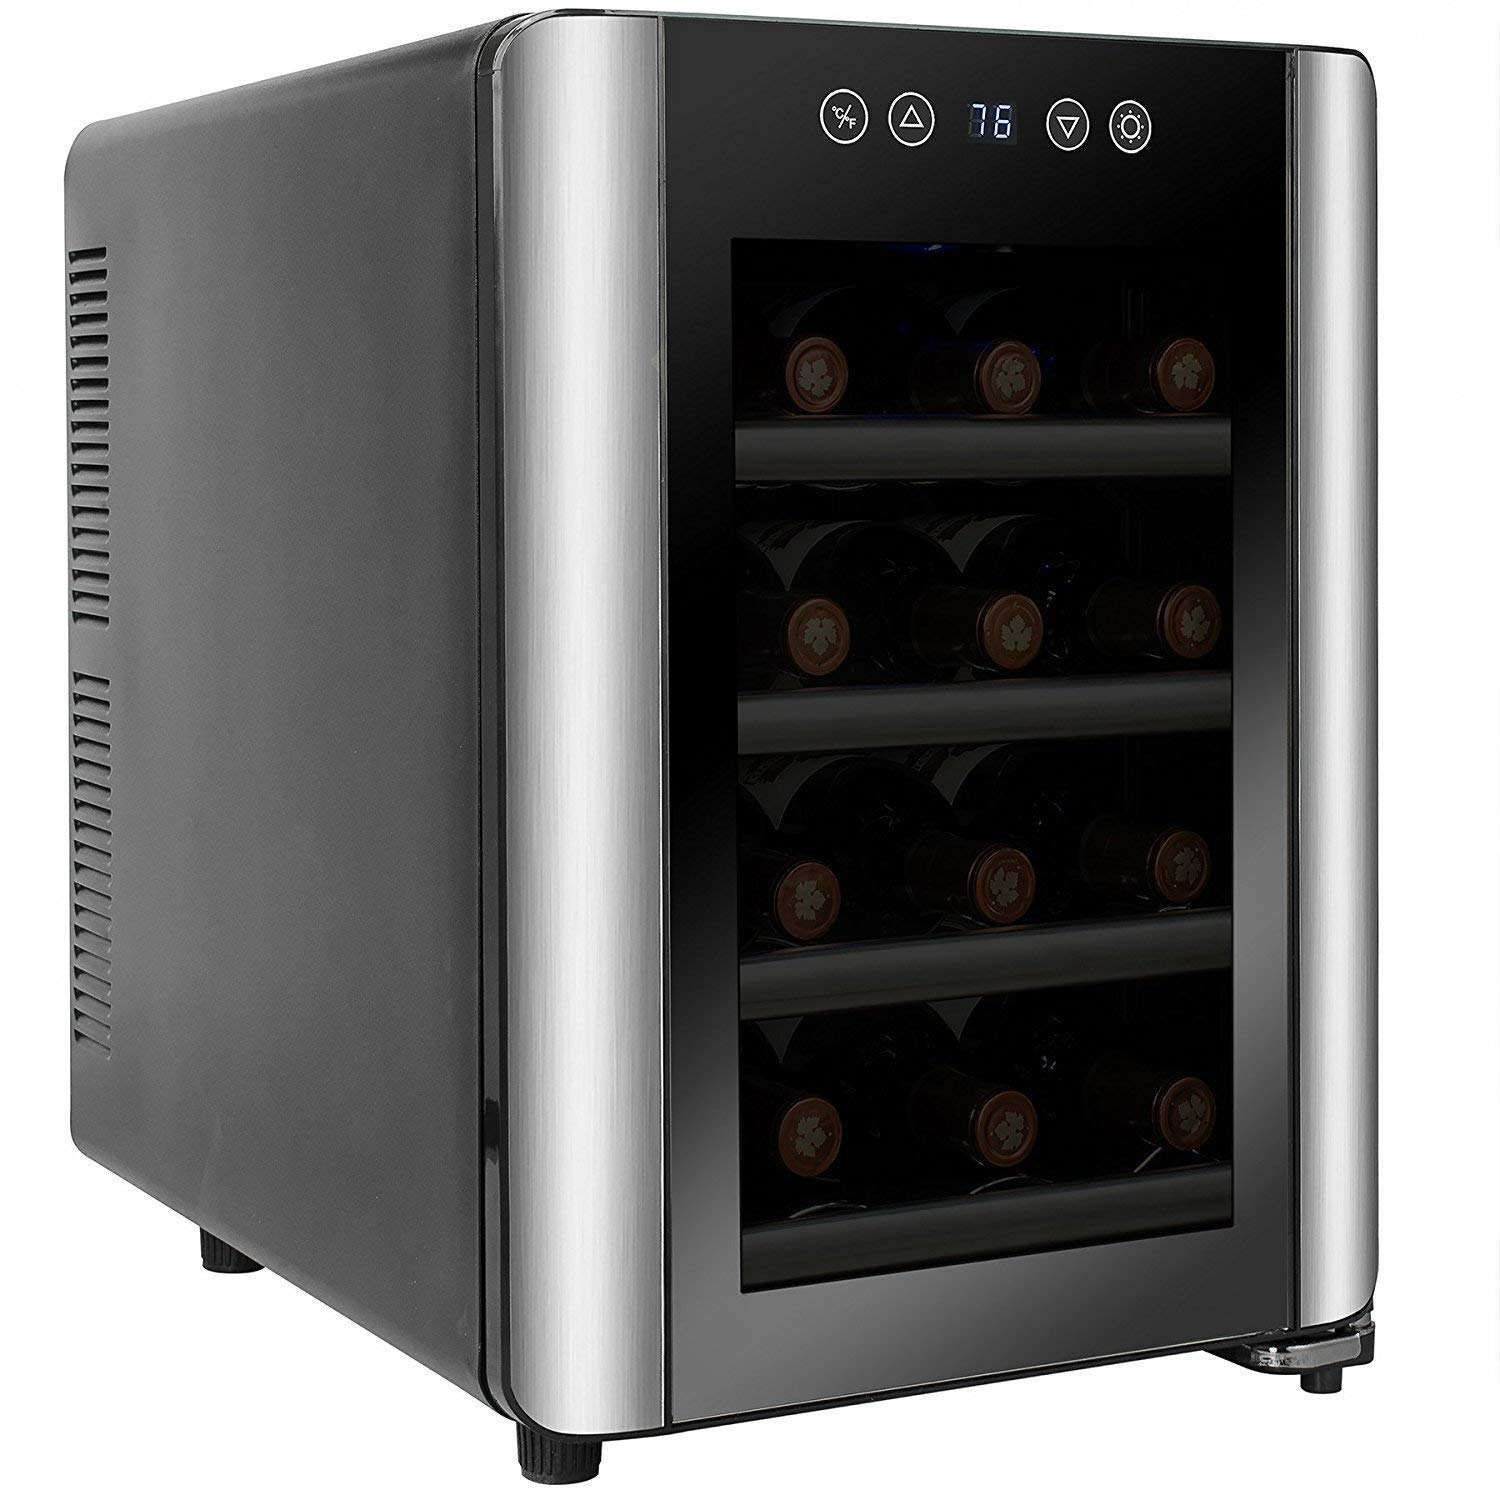 12 Bottle Thermoelectric Wine Cooler Single Zone FreeStanding Refrigerator